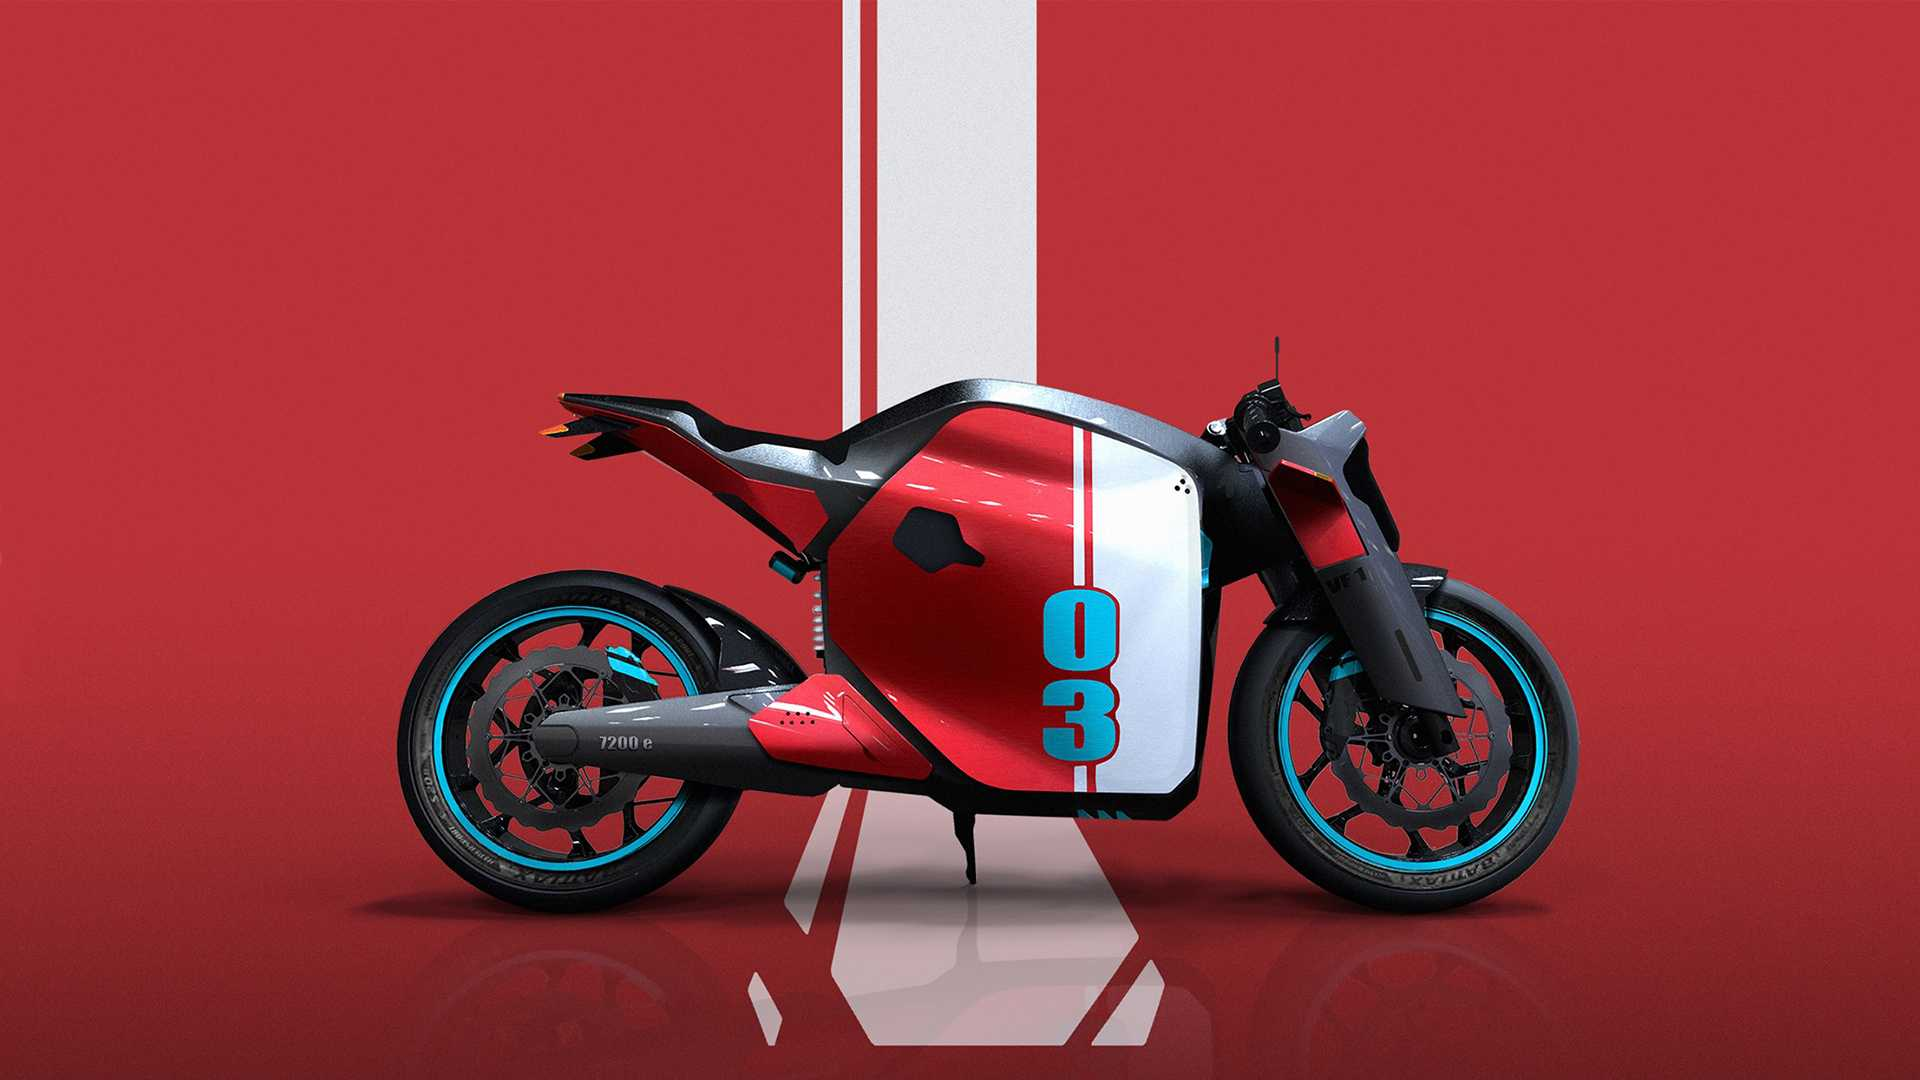 Ultraviolette Unveils F77 Electric Superbike In November